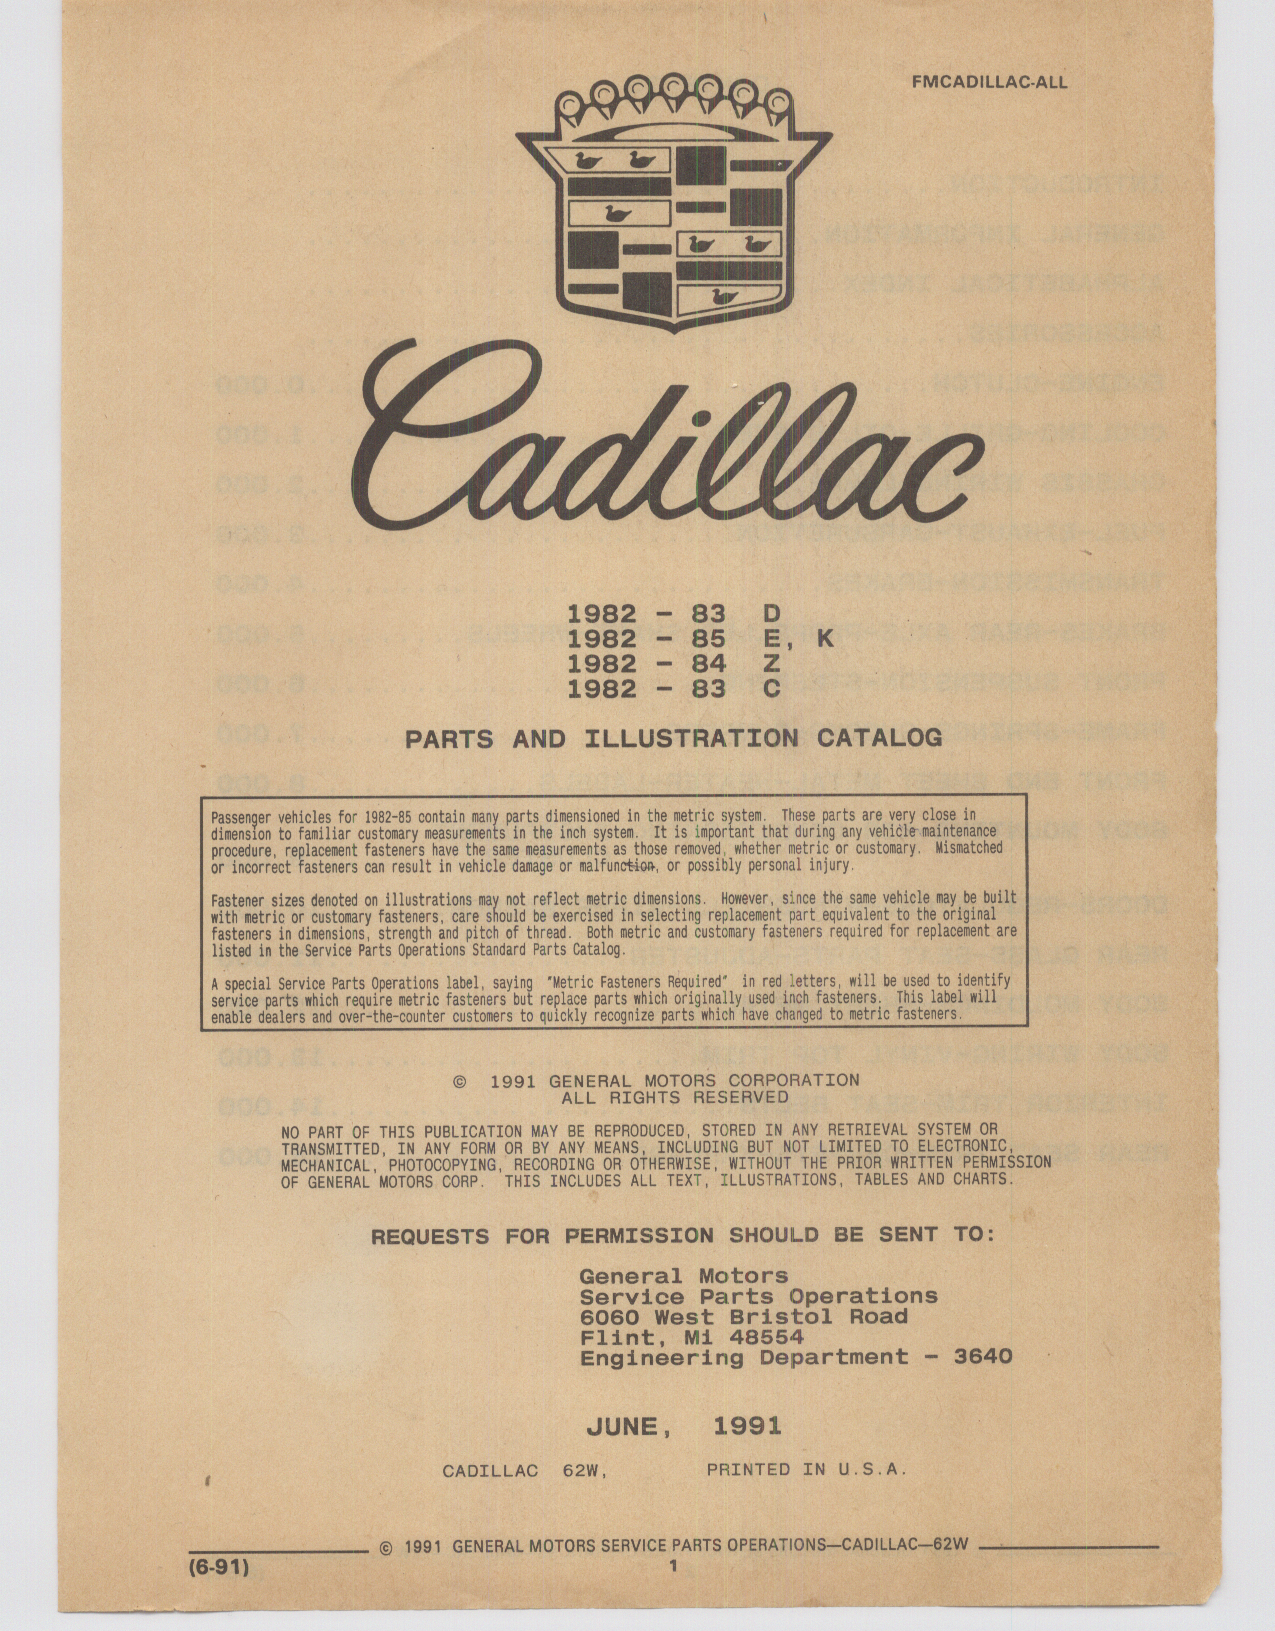 Cadillac Parts and Accessories Catalog June 1991